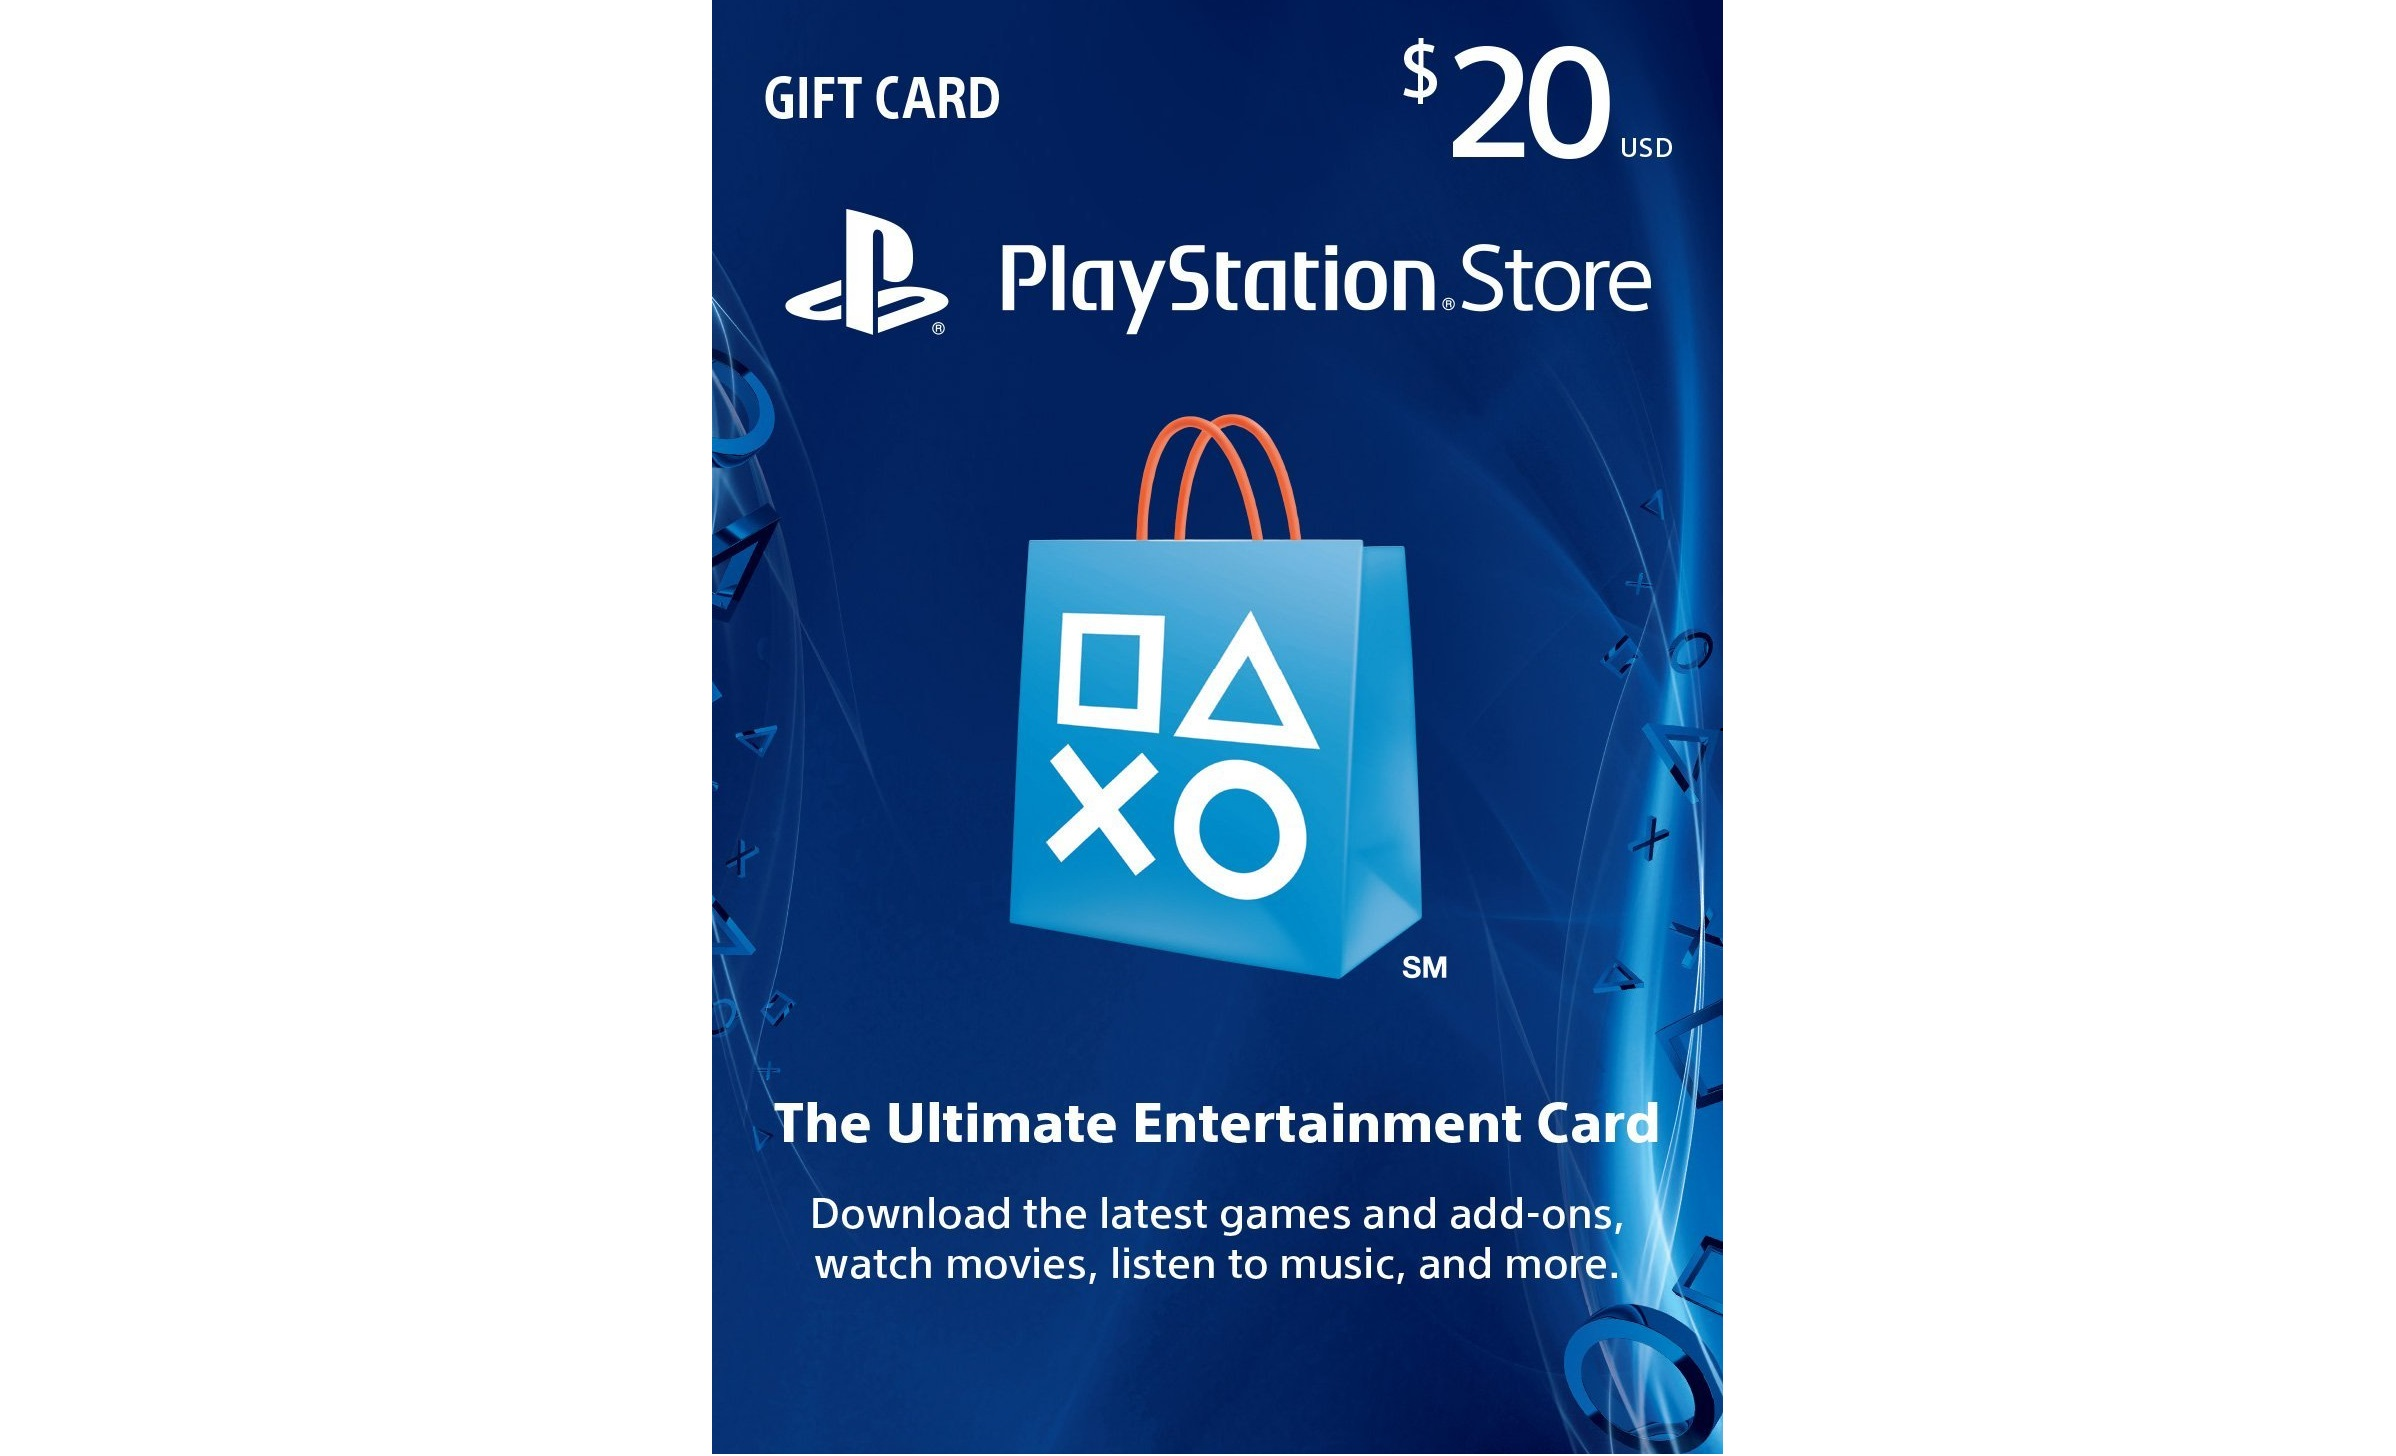 gift card playstation store us 20 breaking station. Black Bedroom Furniture Sets. Home Design Ideas